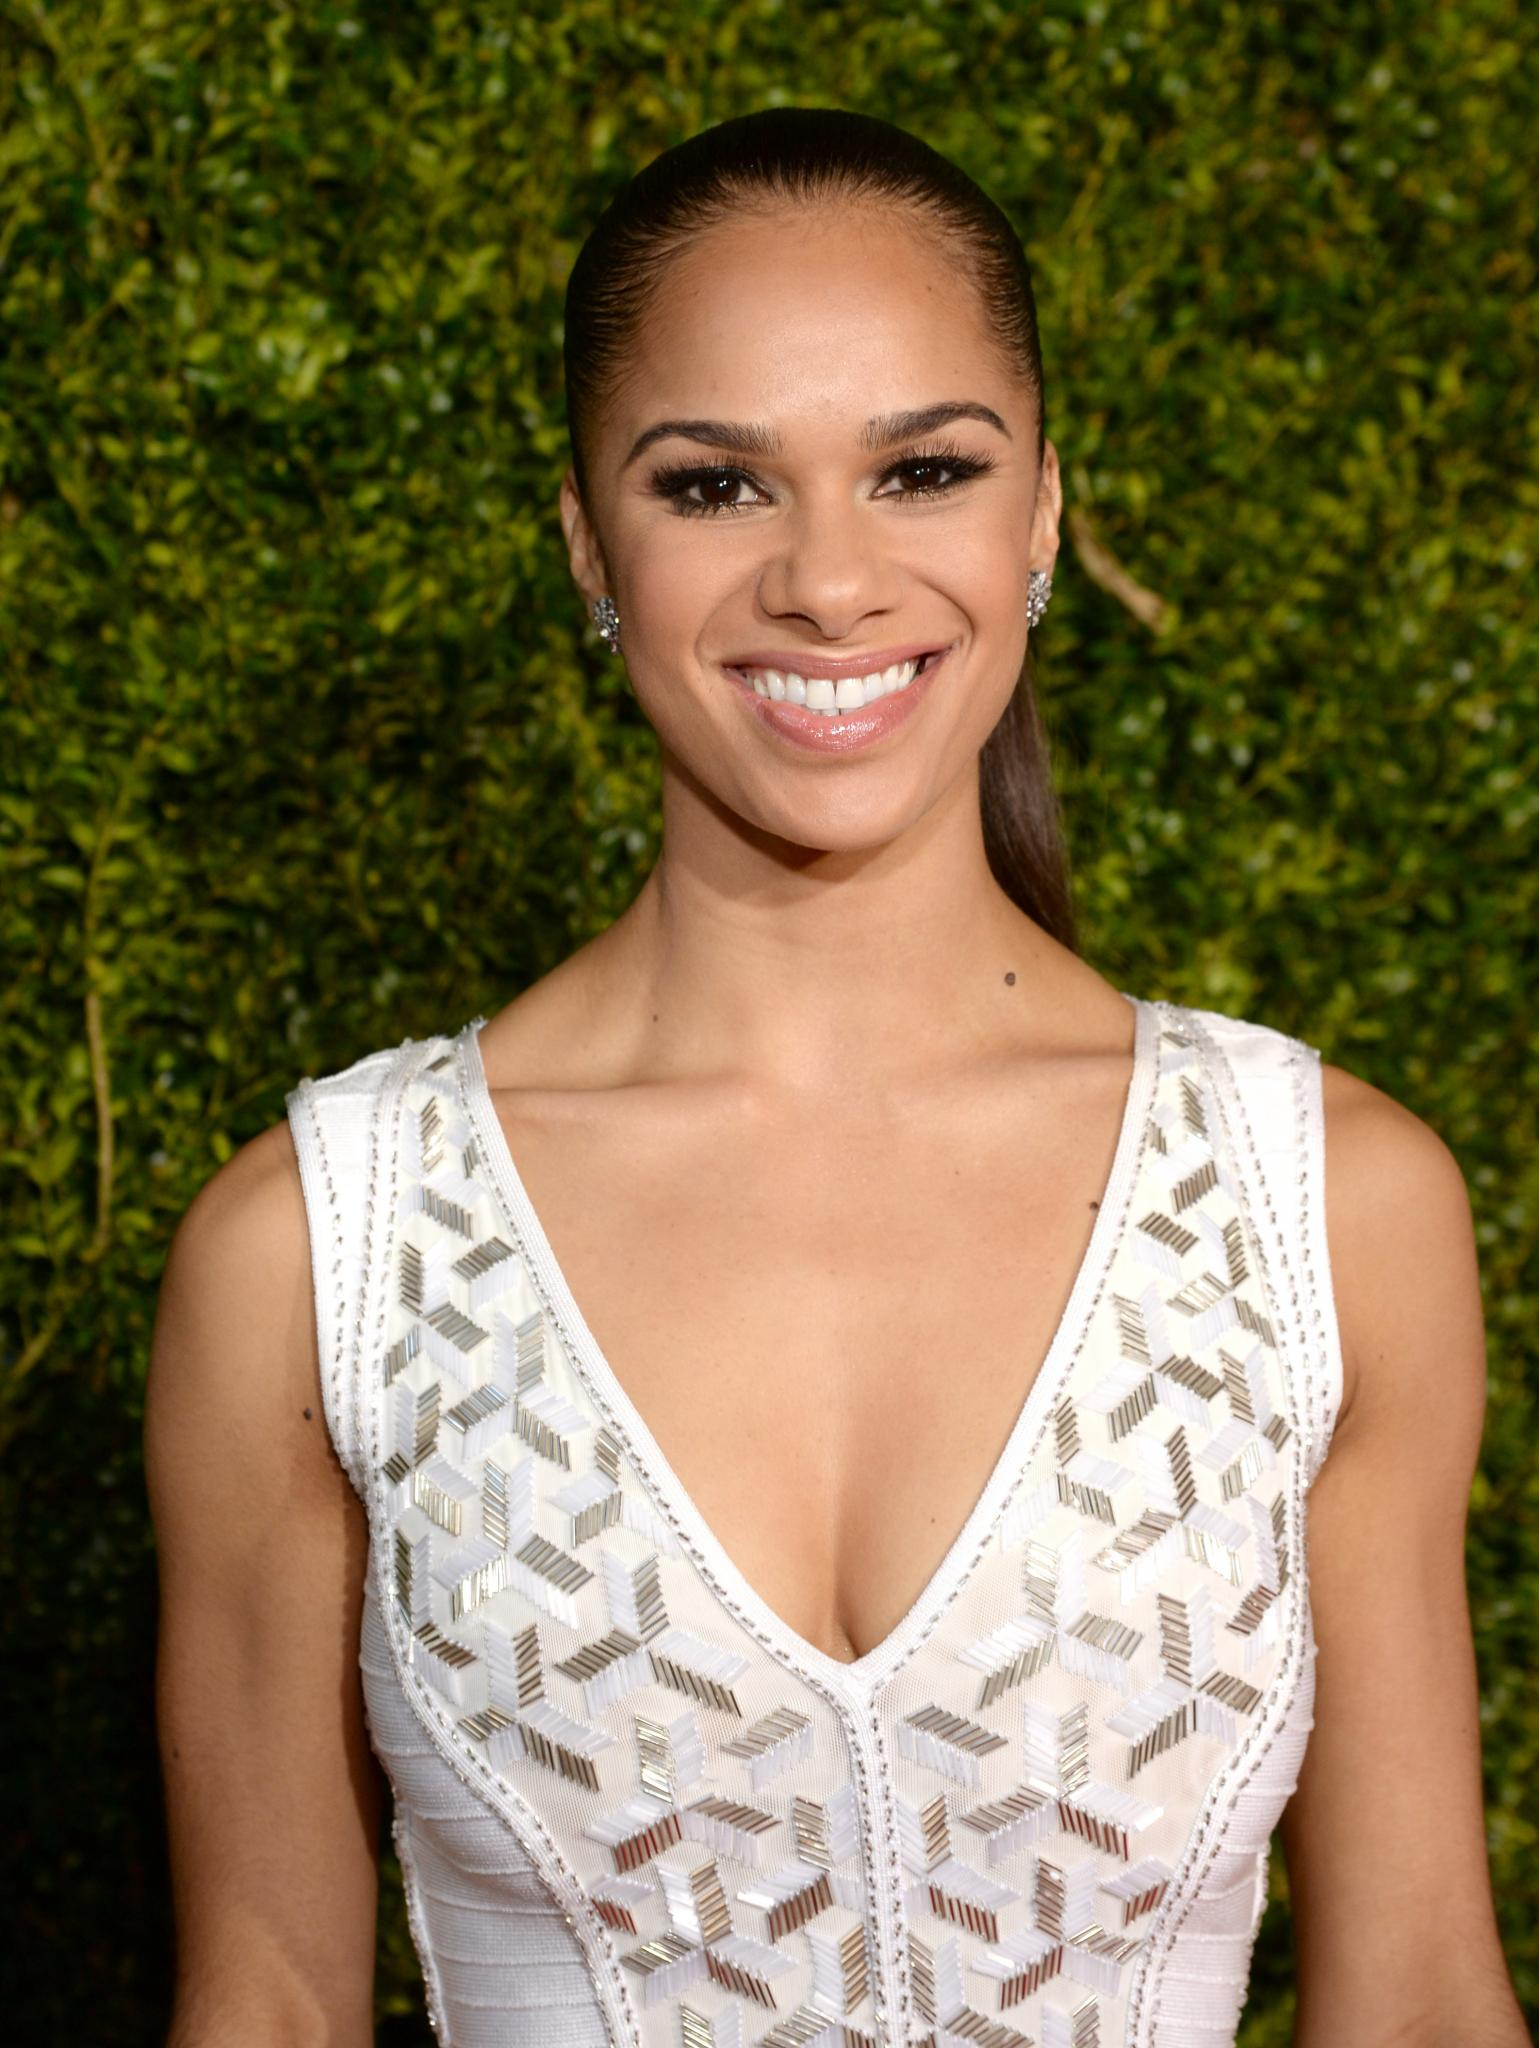 Is Misty Copeland Going to Be a Summer Bride?